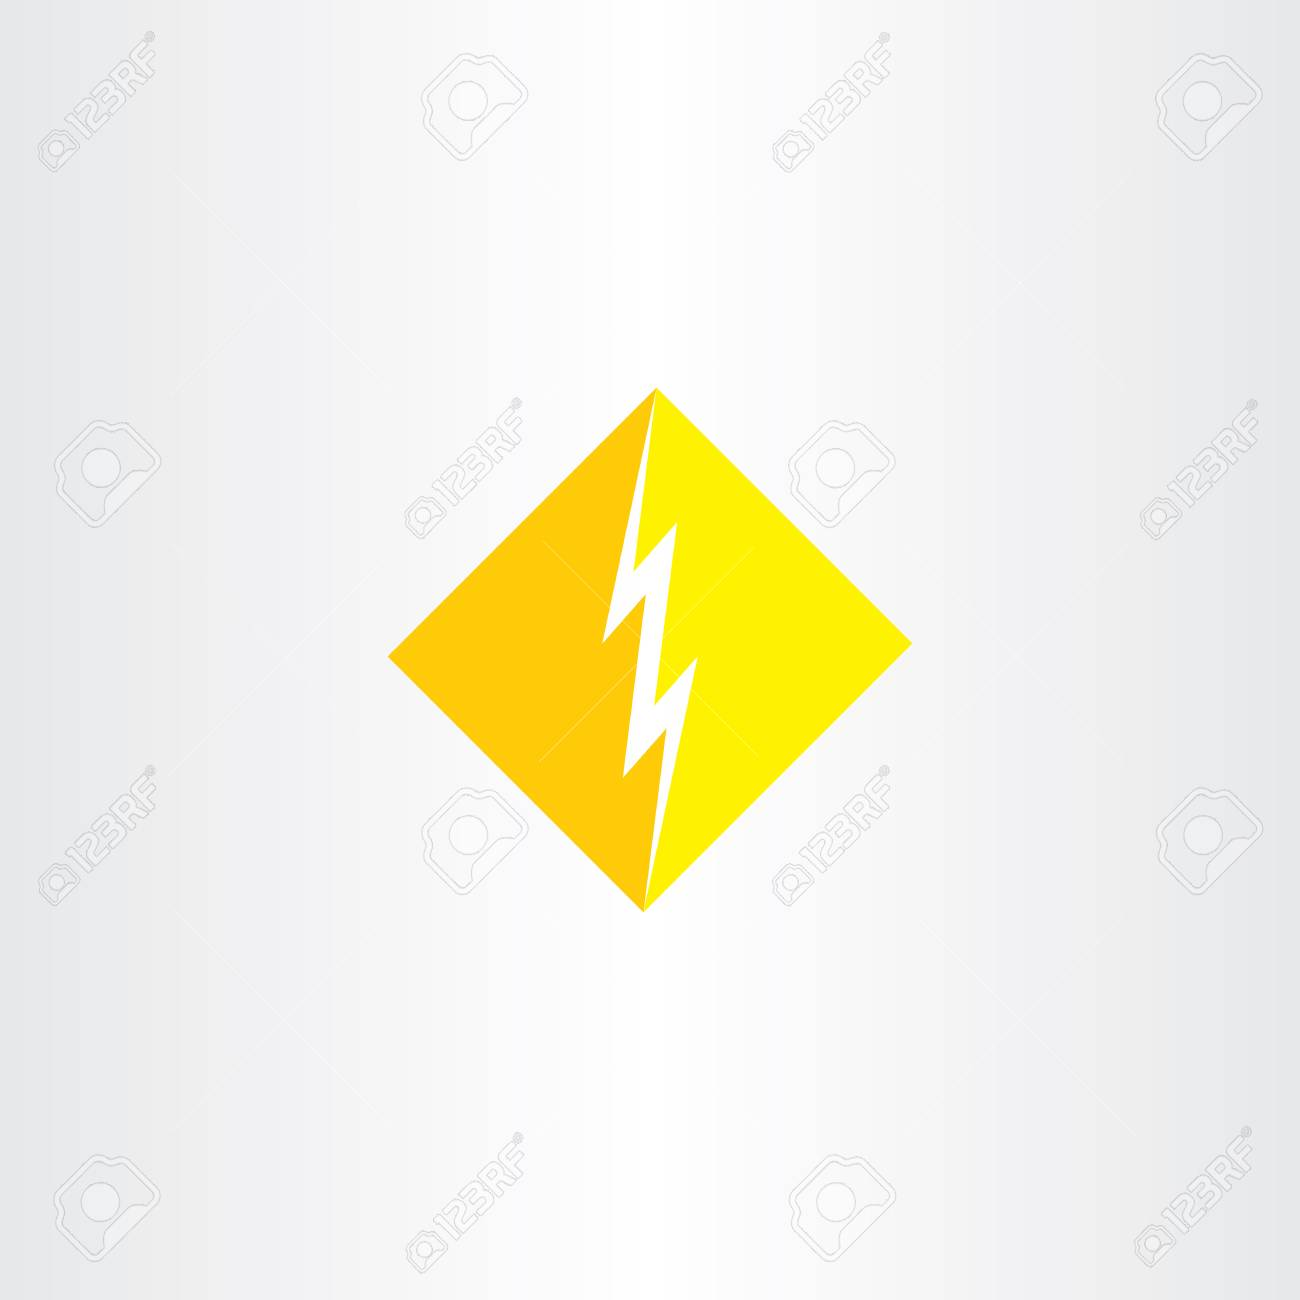 thunder icon vector symbol sign shape royalty free cliparts vectors